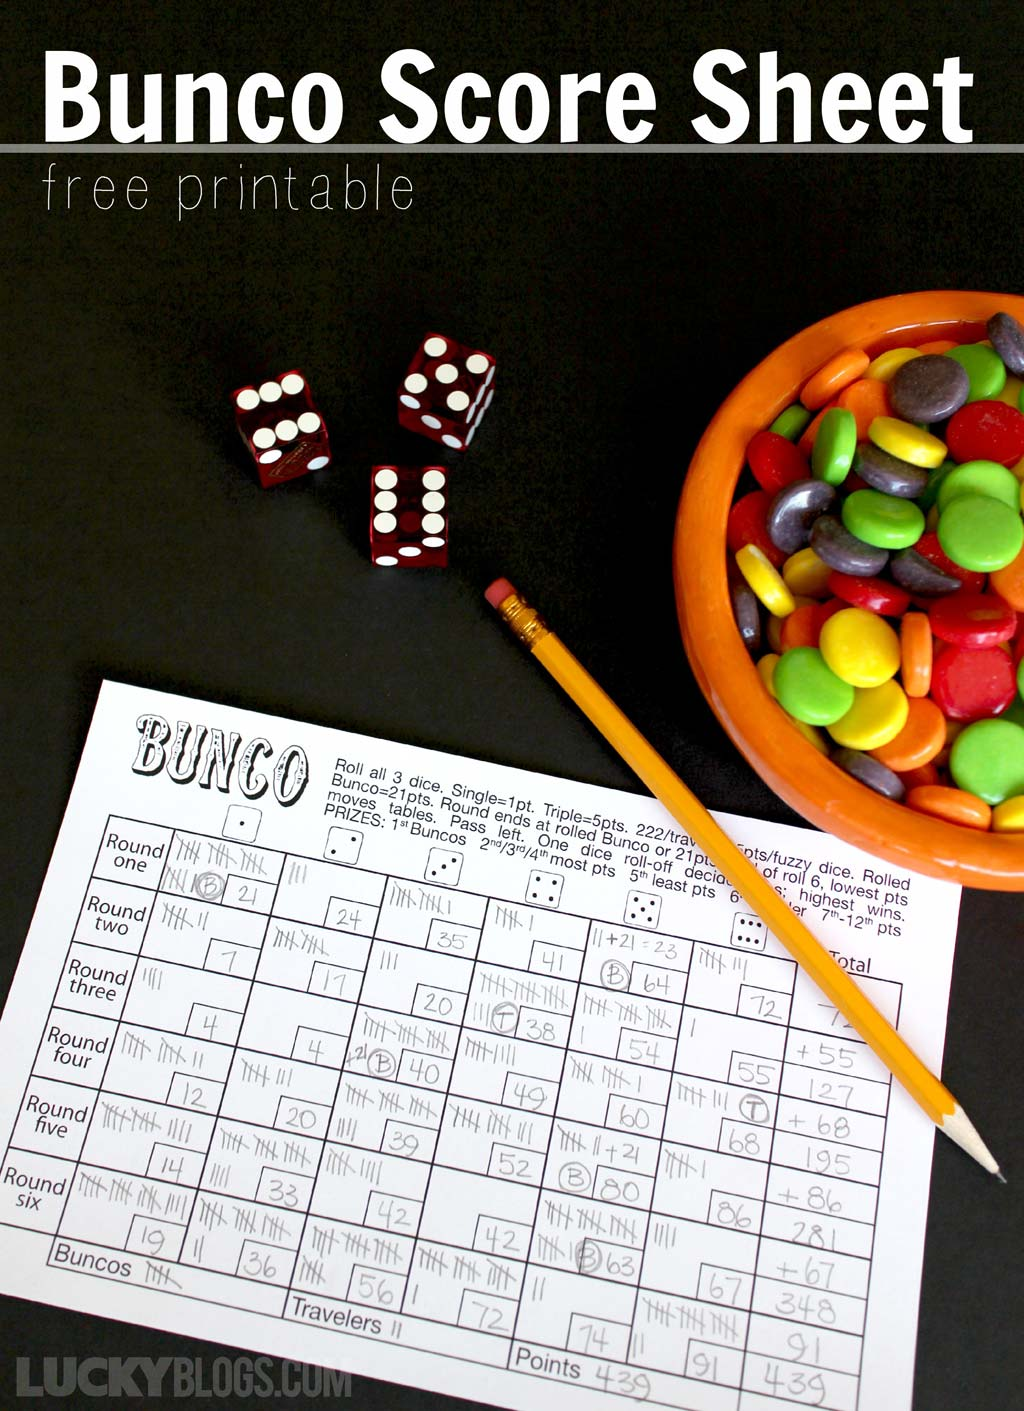 image relating to Cute Bunco Score Sheets Printable known as Bunco Rating Sheet Totally free Printable -